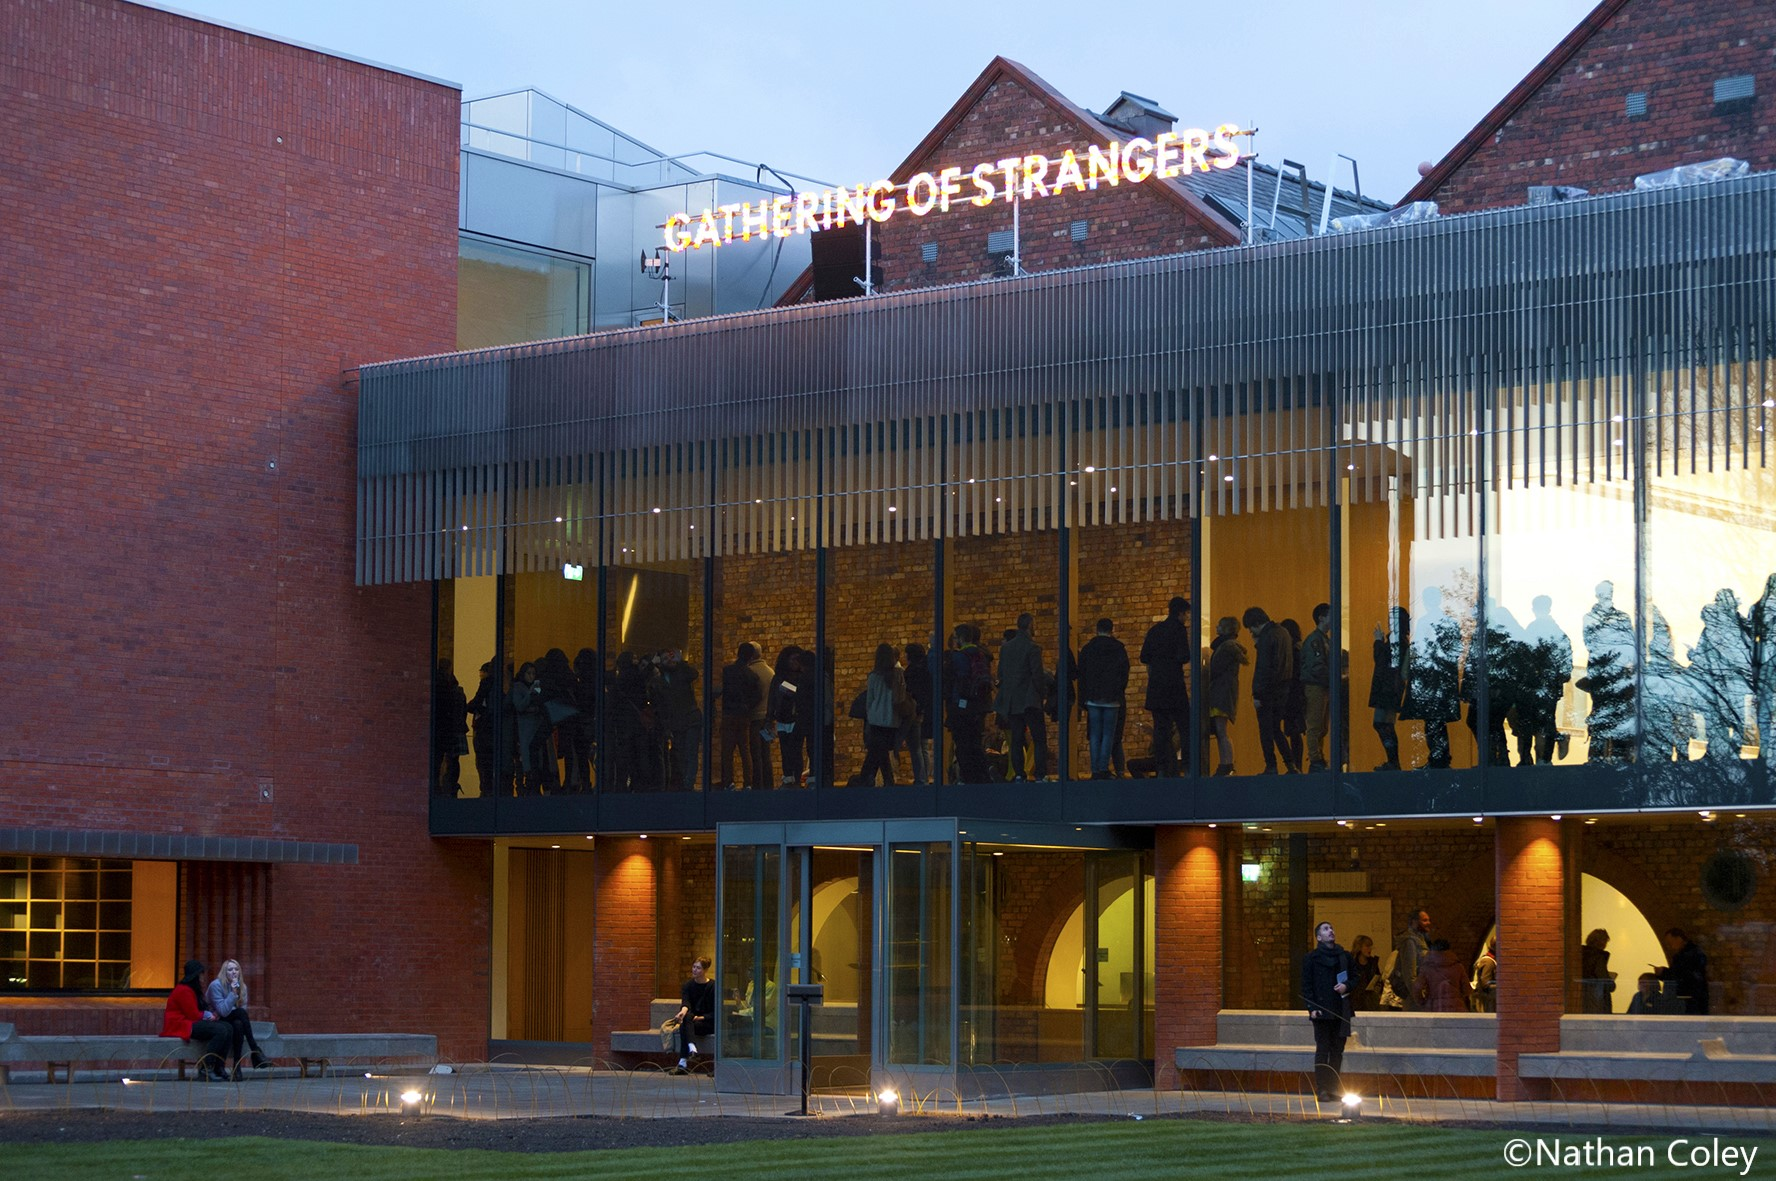 Whitworth Art Gallery shortlisted for the Stirling Prize 2015!